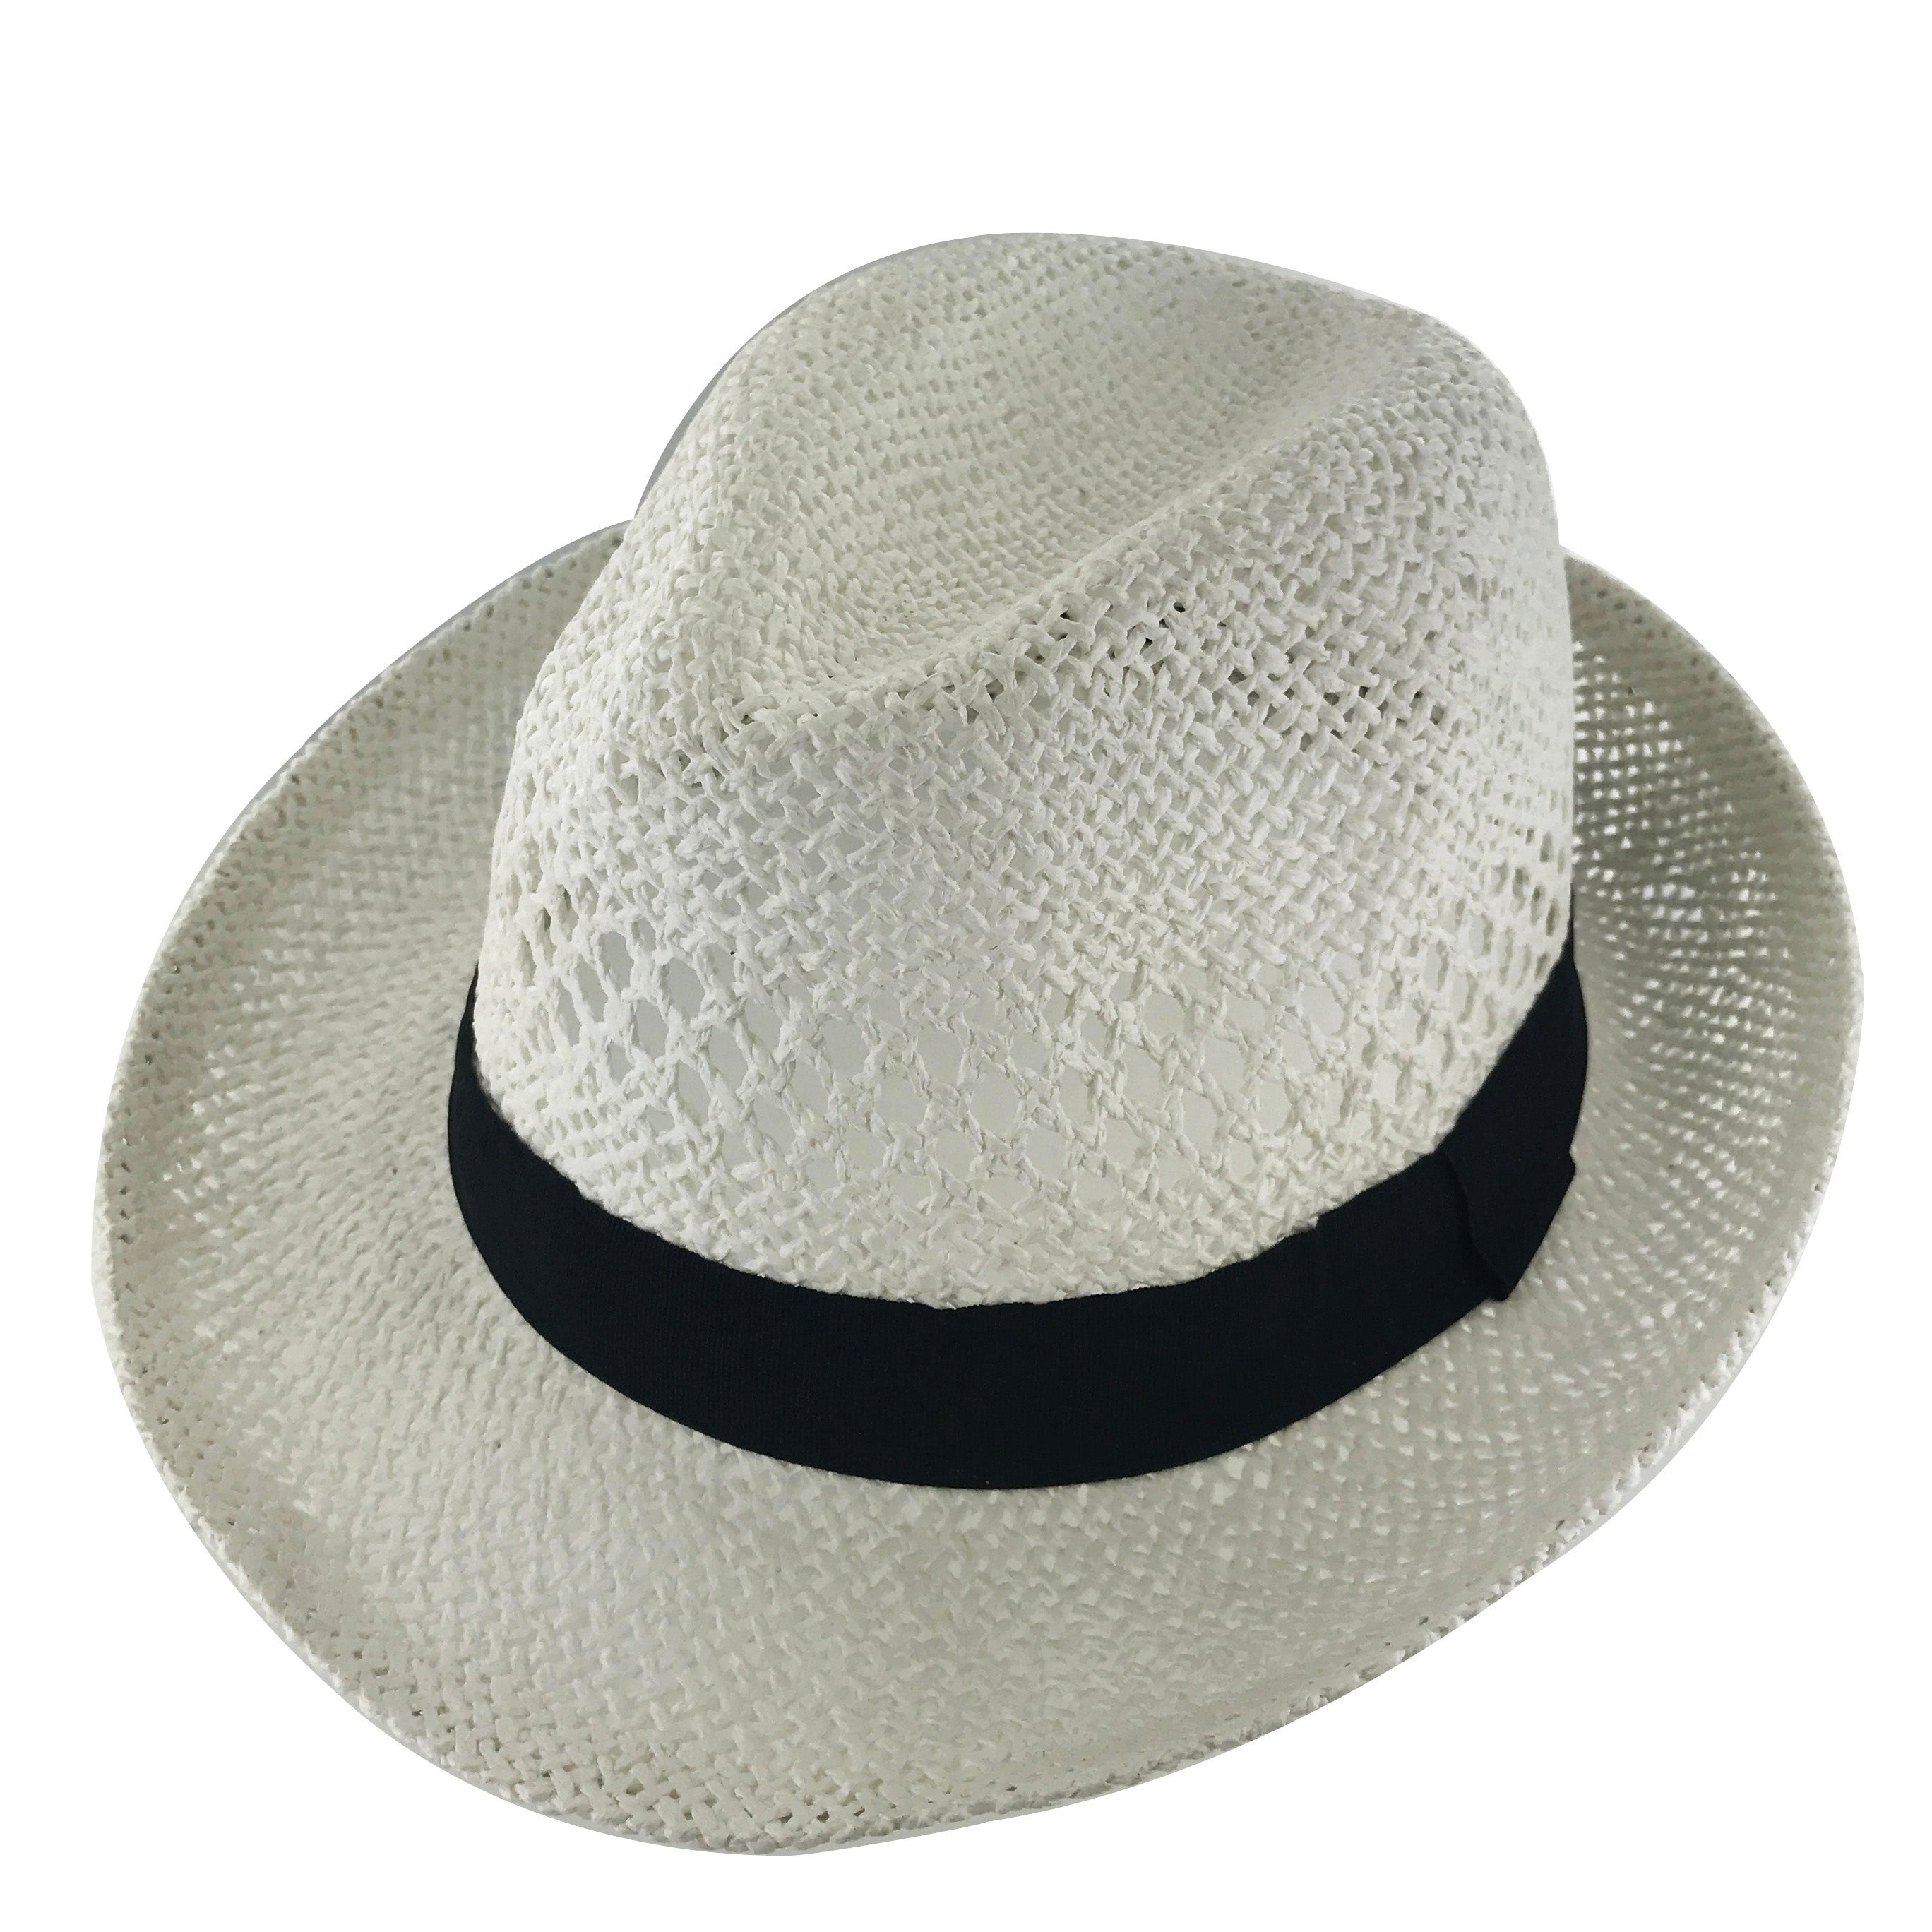 aa3414ada94 Shop Faddism Unisex Vented Ribbon Cuban Brim Fedora Straw Hat Model 215 -  Free Shipping On Orders Over  45 - Overstock - 17955548